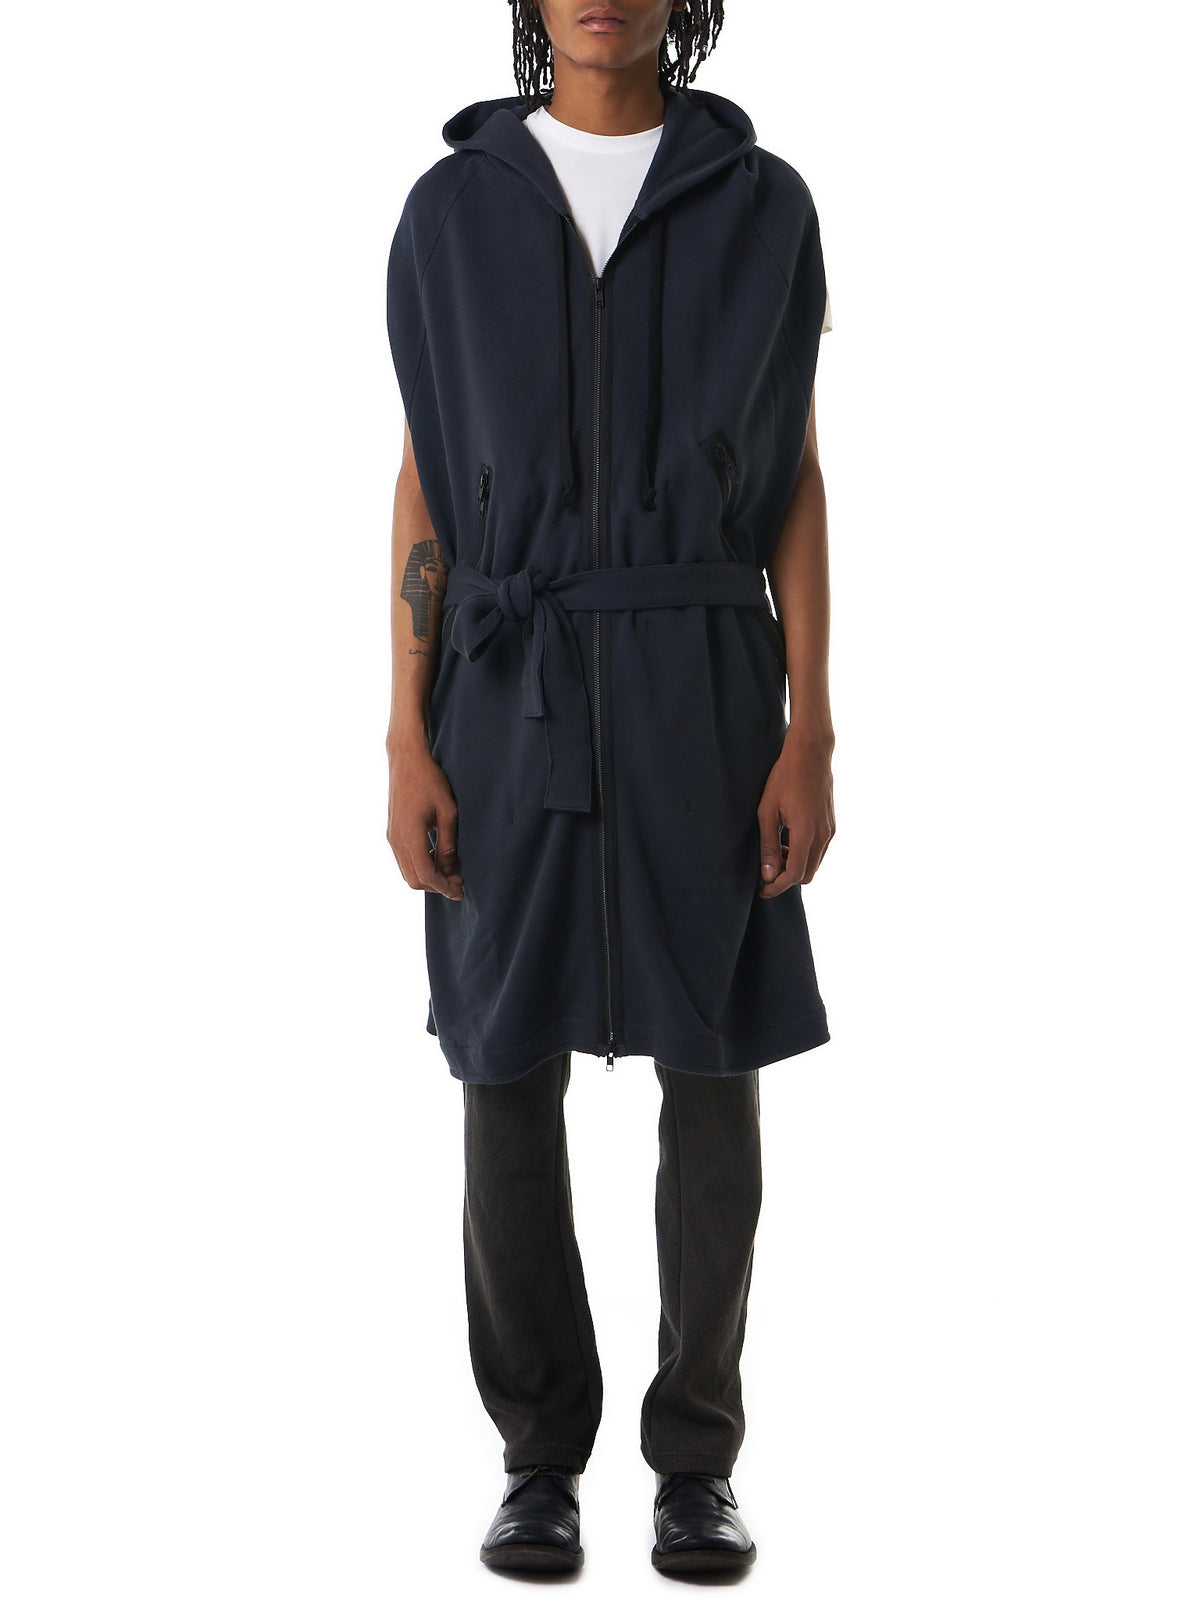 Elongated Hooded Waistcoat (1701-3922-225-097) - H. Lorenzo